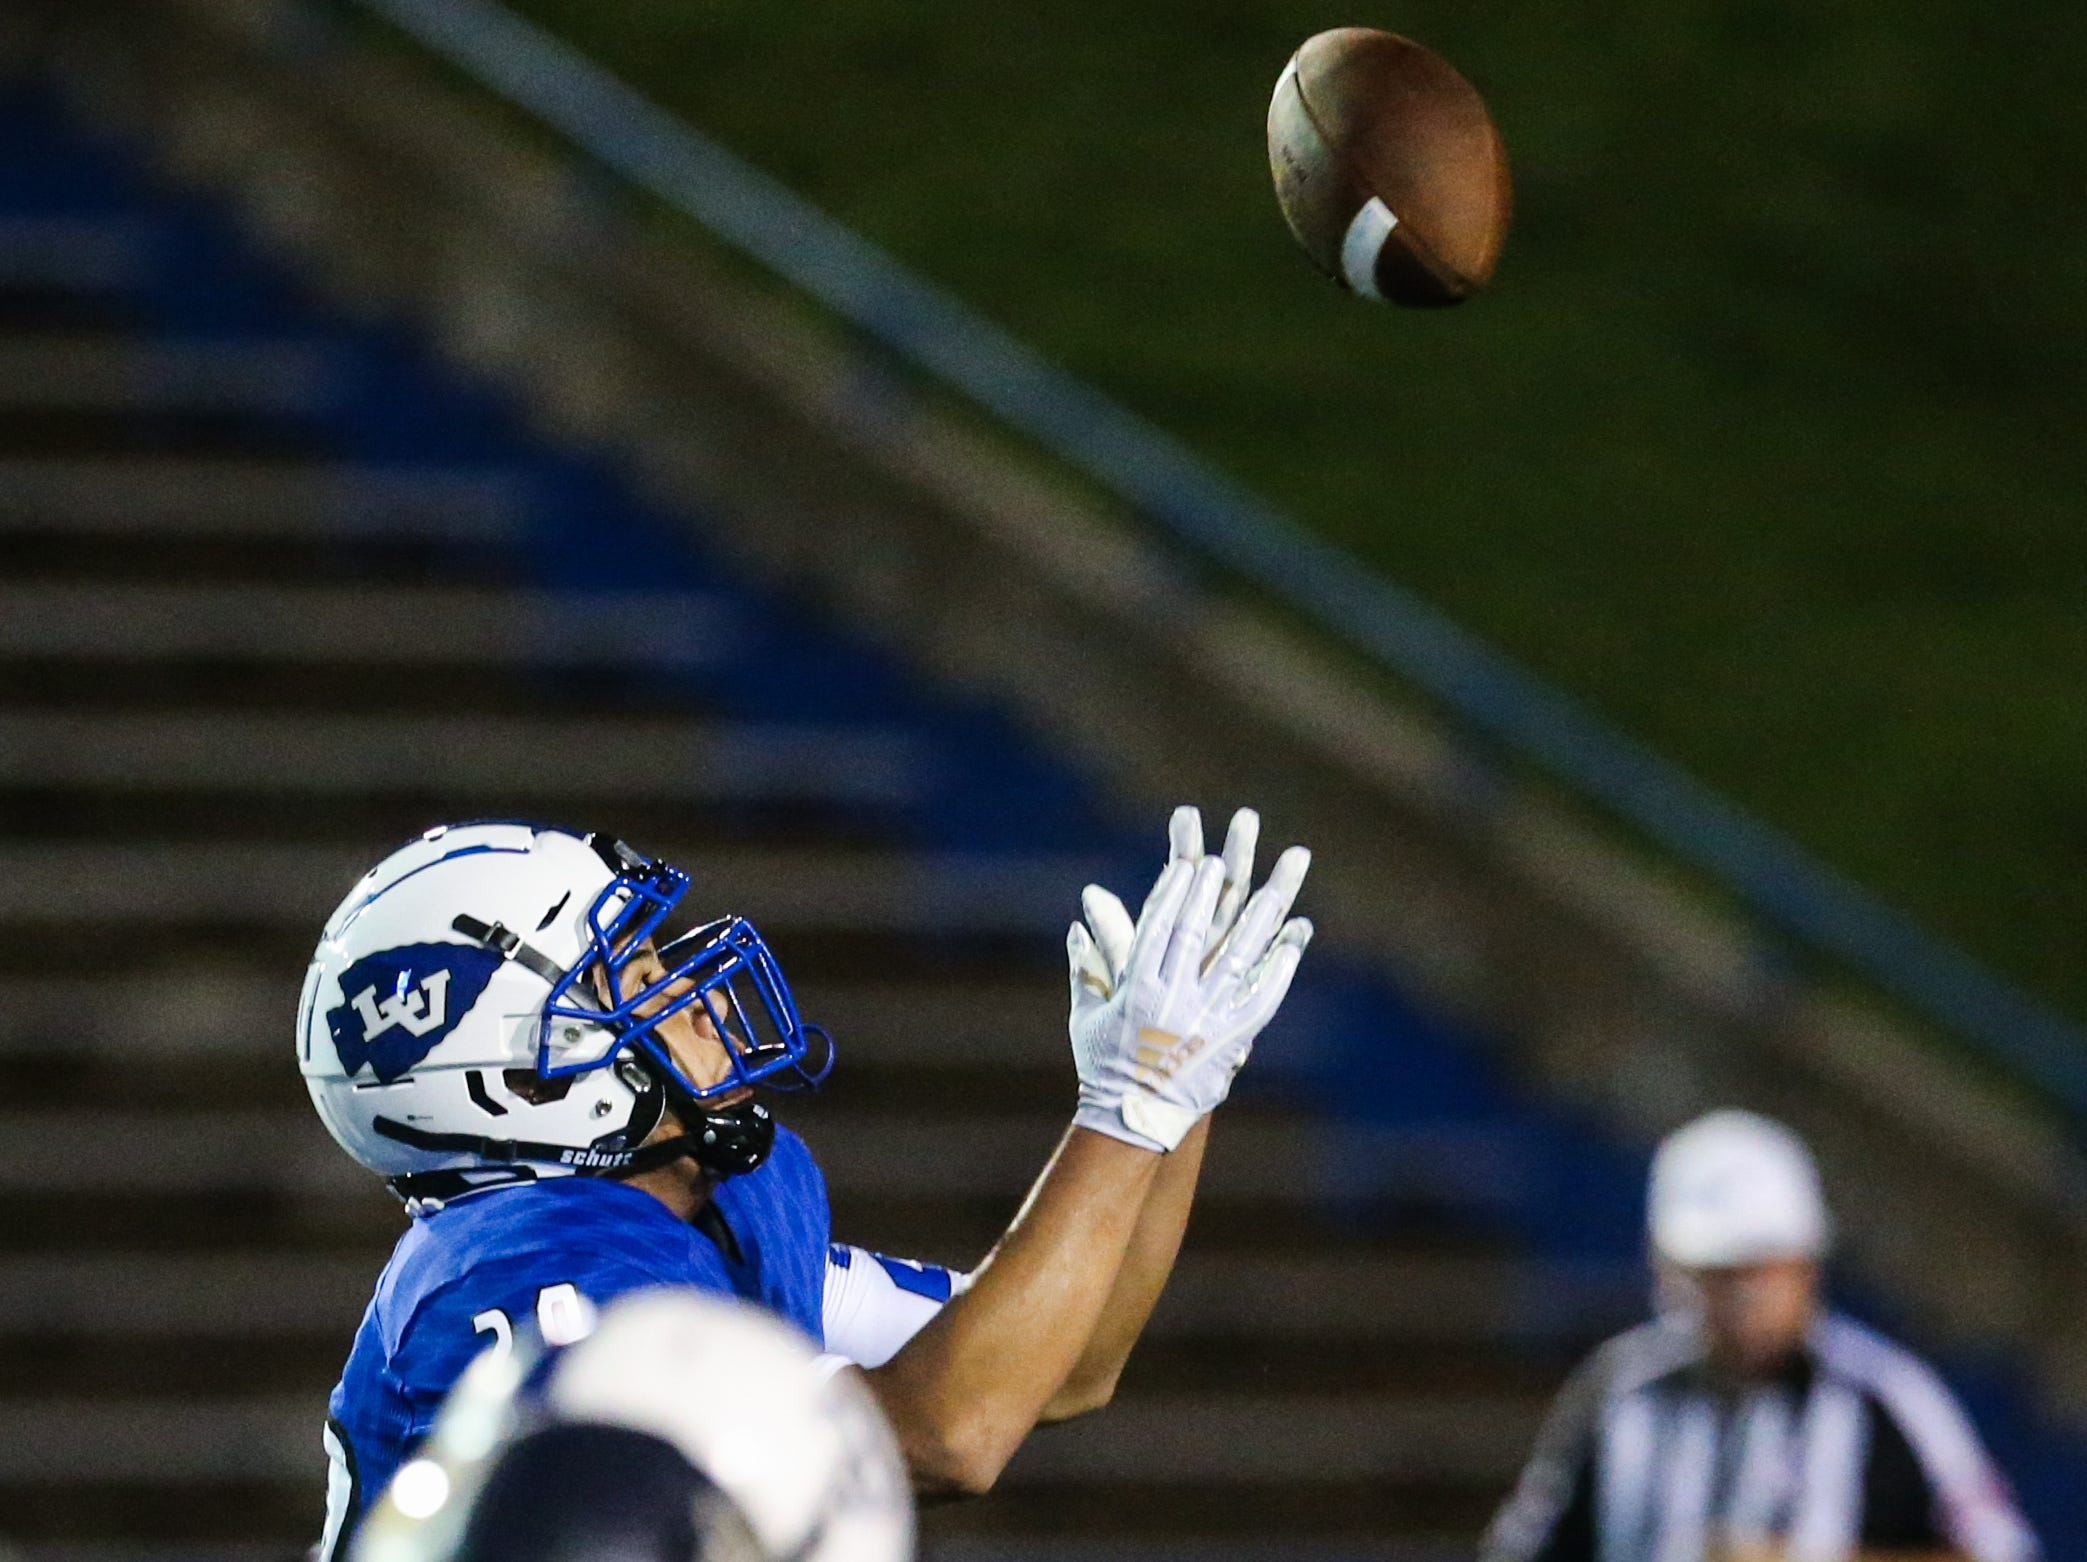 Lake View's Sonny Moreno catches a pass against Fabens Friday, Sept. 7, 2018, at San Angelo Stadium.